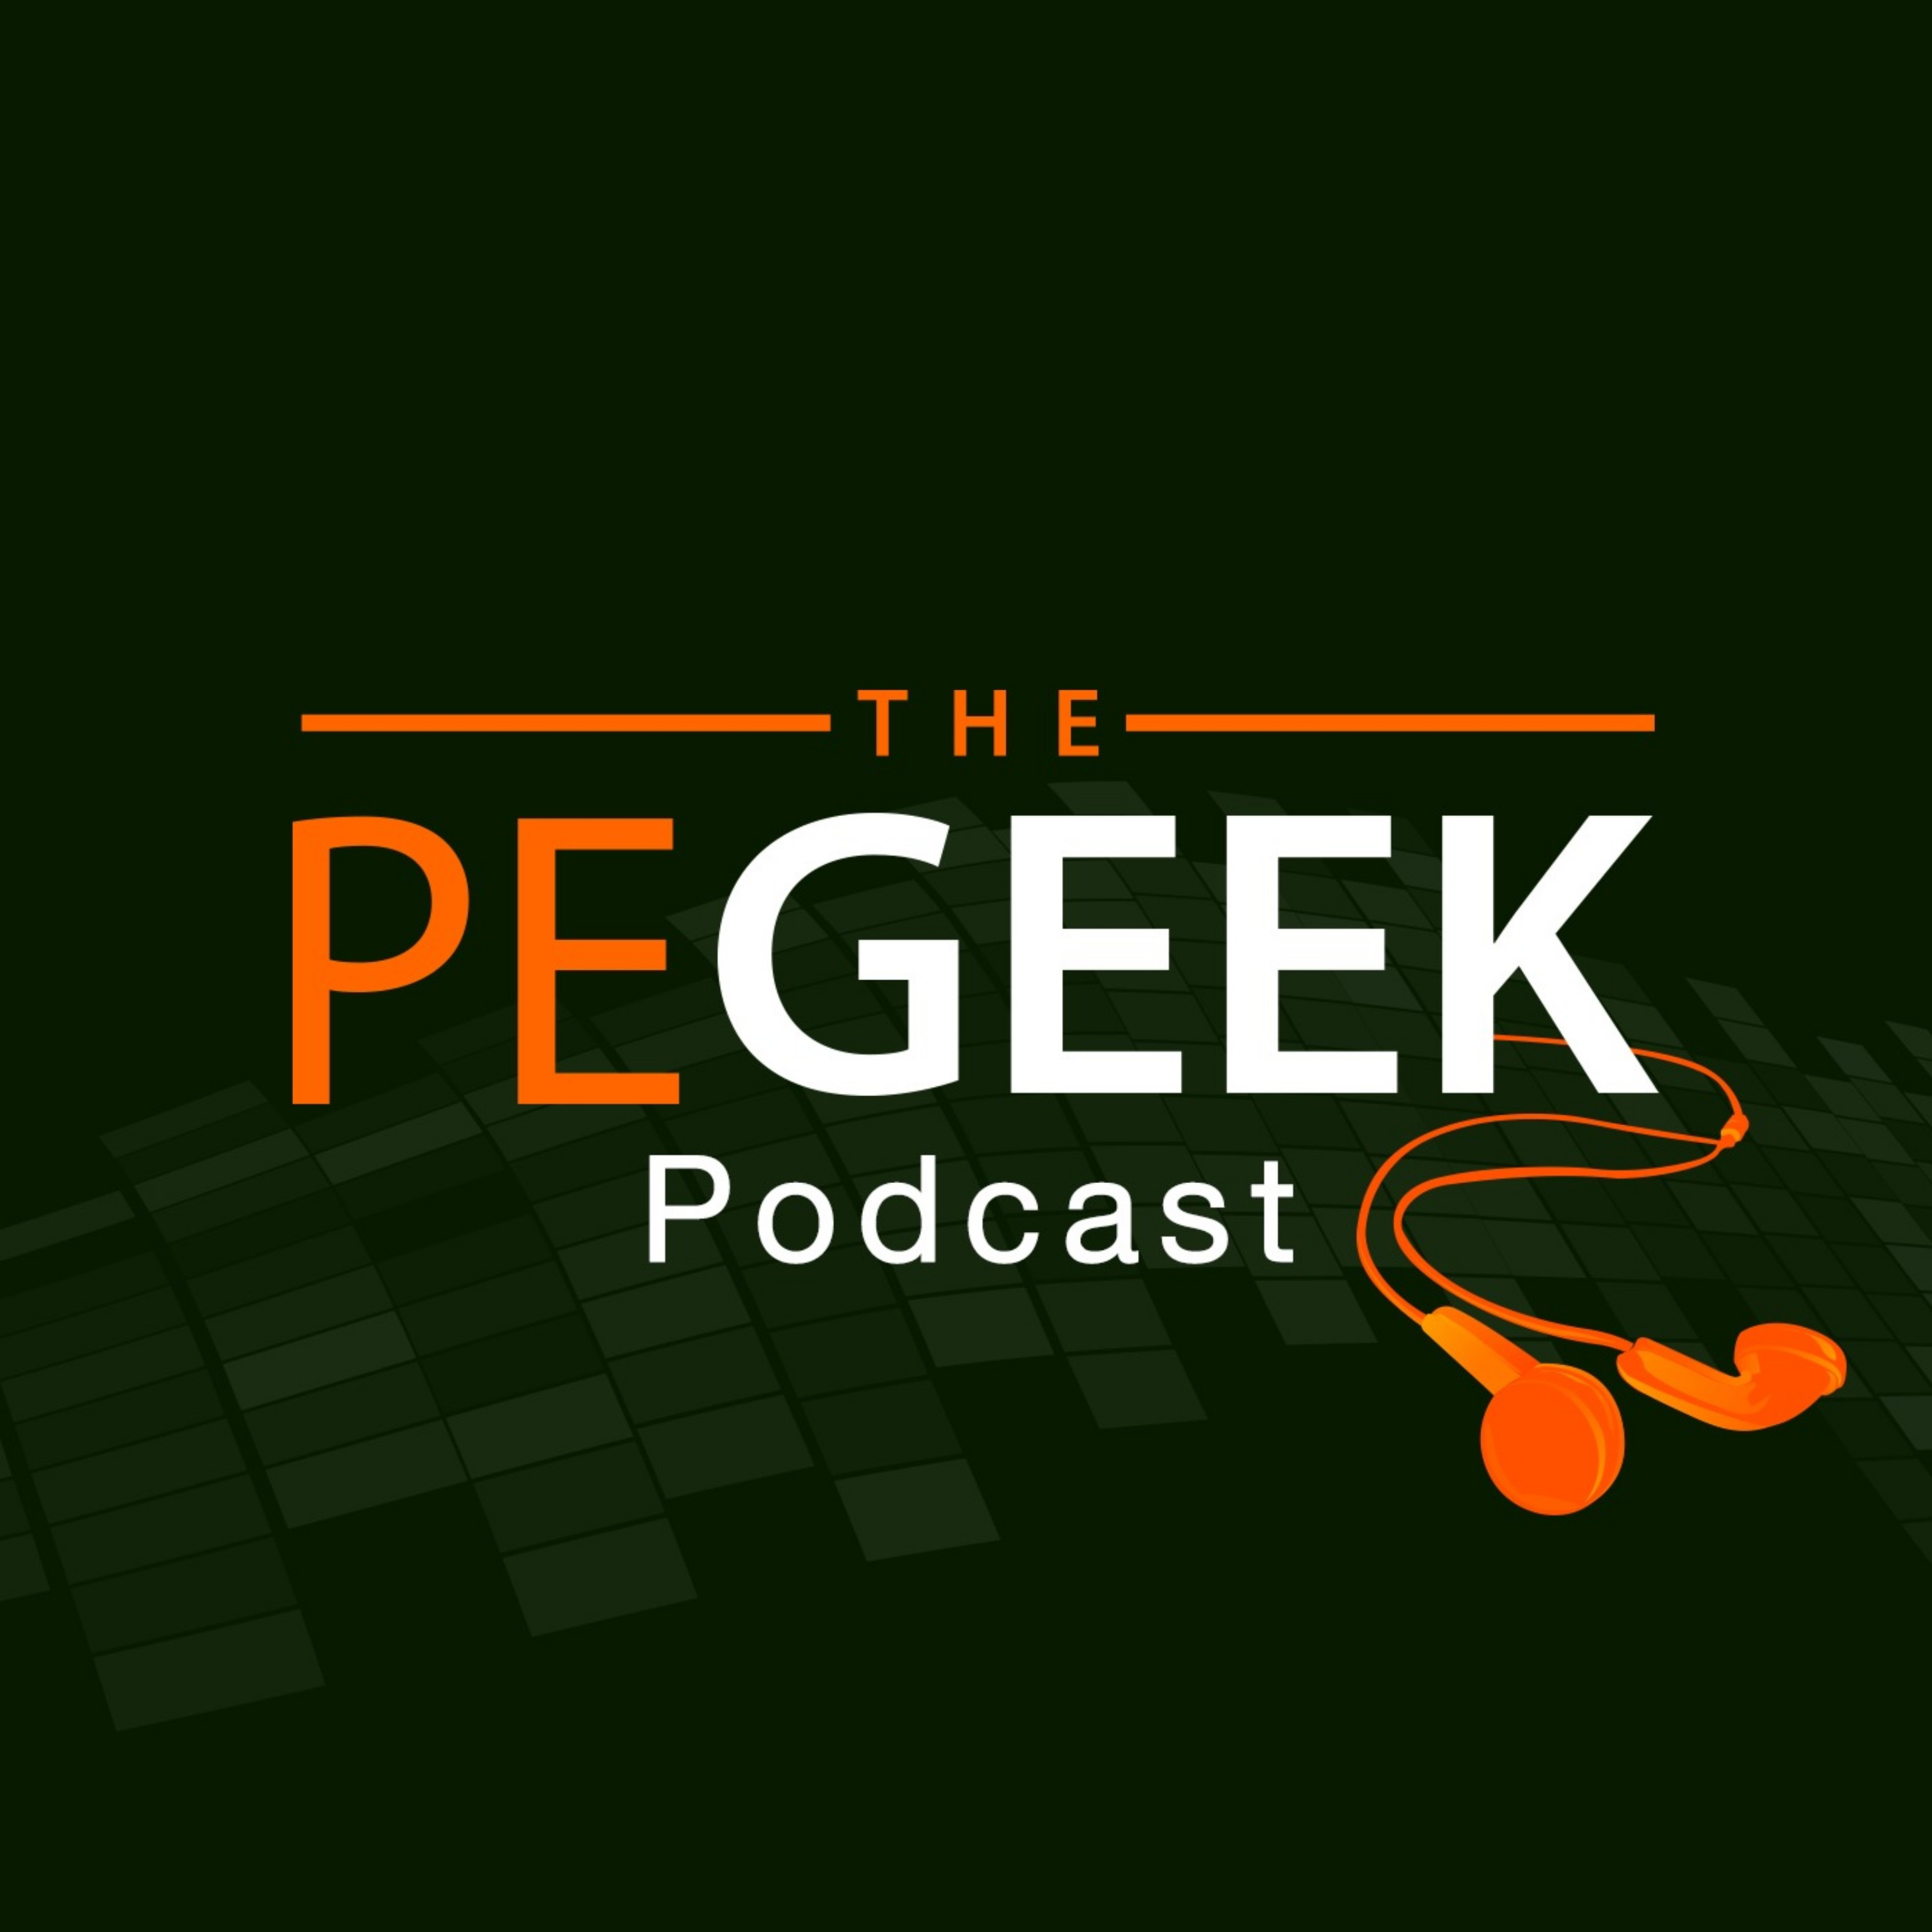 <![CDATA[The PE Geek Podcast ]]>